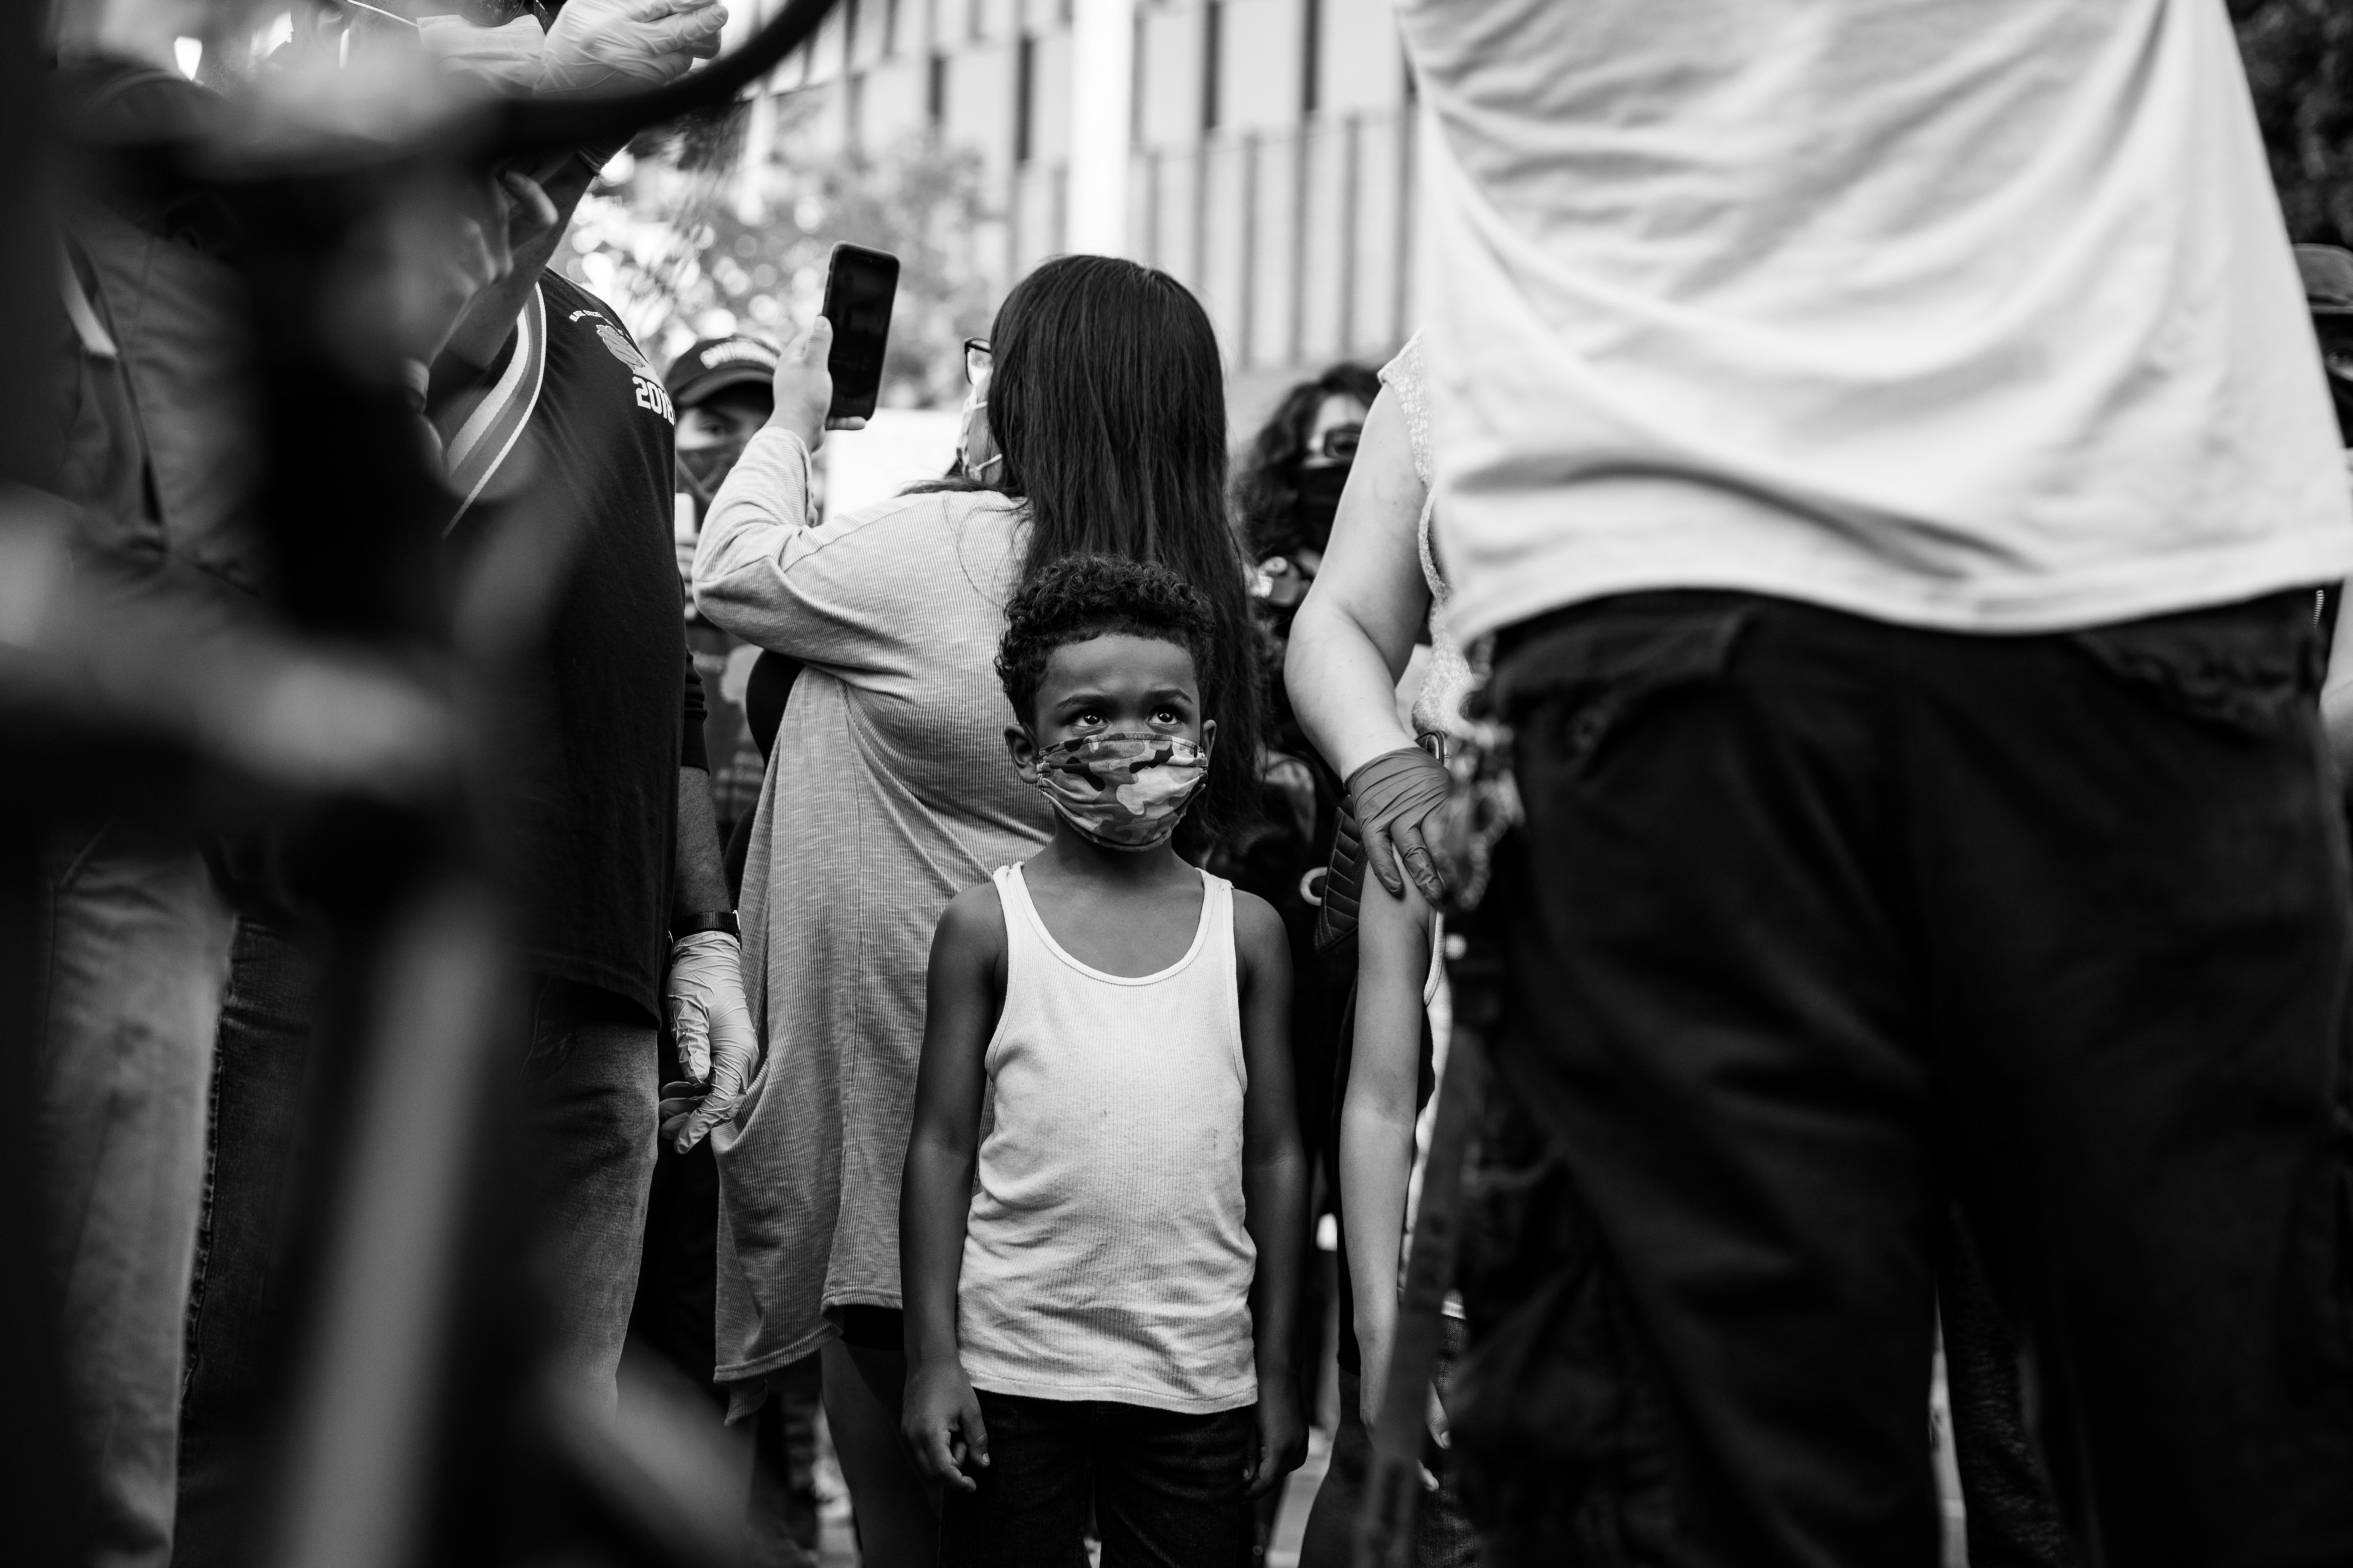 A black and white photo of a young Black boy wearing a face mask at a protest in LA.